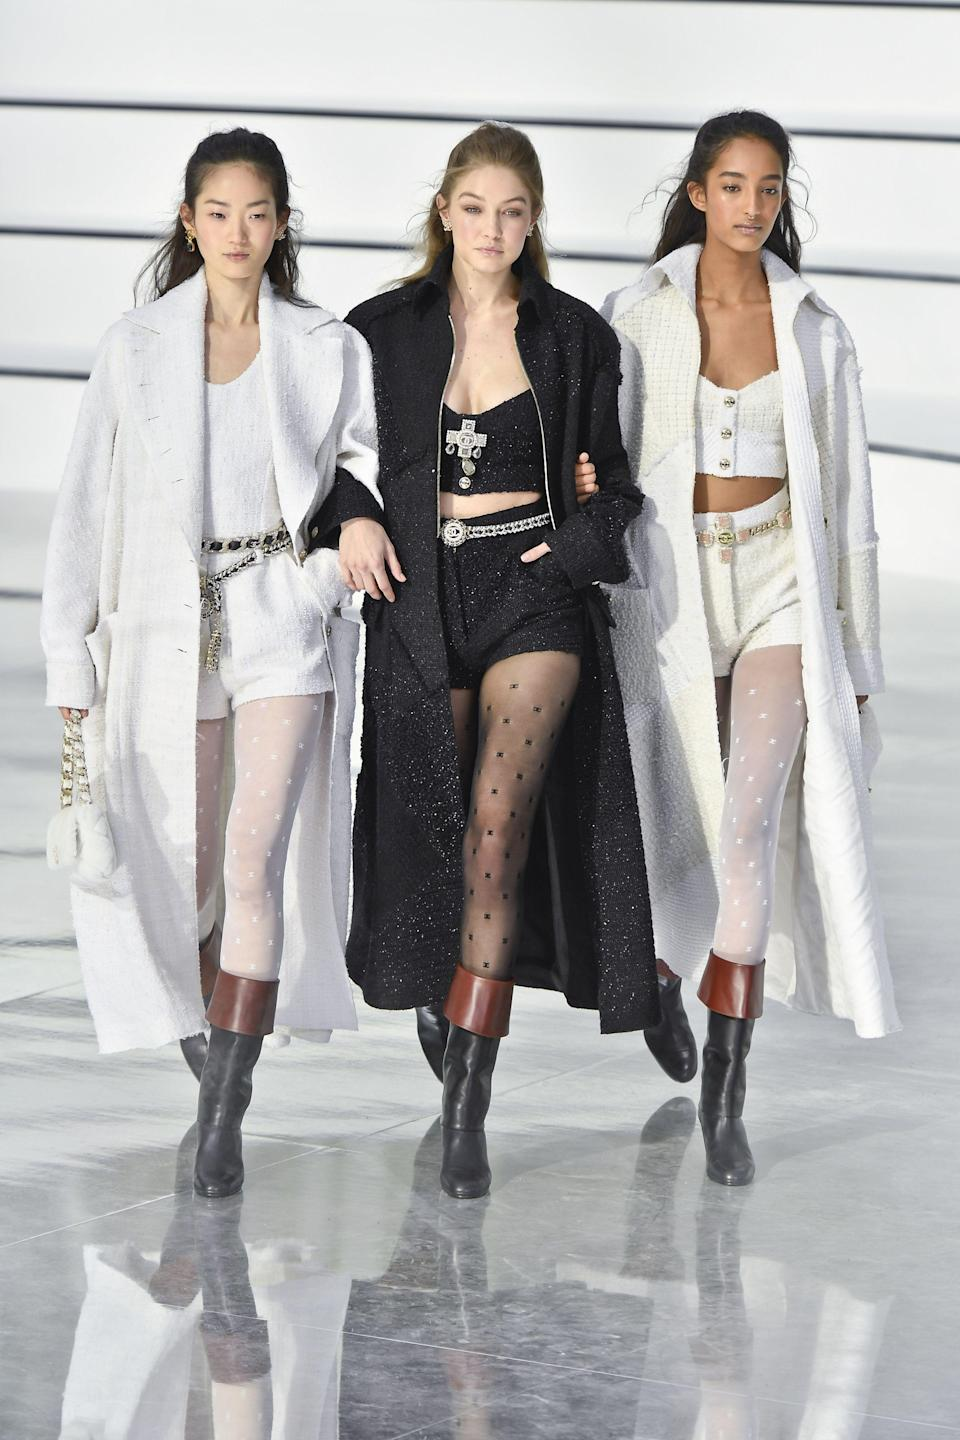 <p>During the AW20 season, Hadid walked the Chanel, Miu Miu, Isabel Marant, Lanvin, Missoni, Versace, Fendi, Moschino, Prada, Proenza Schouler, Marc Jacobs and Tom Ford, all while potentially already being pregnant. We are in awe. </p>